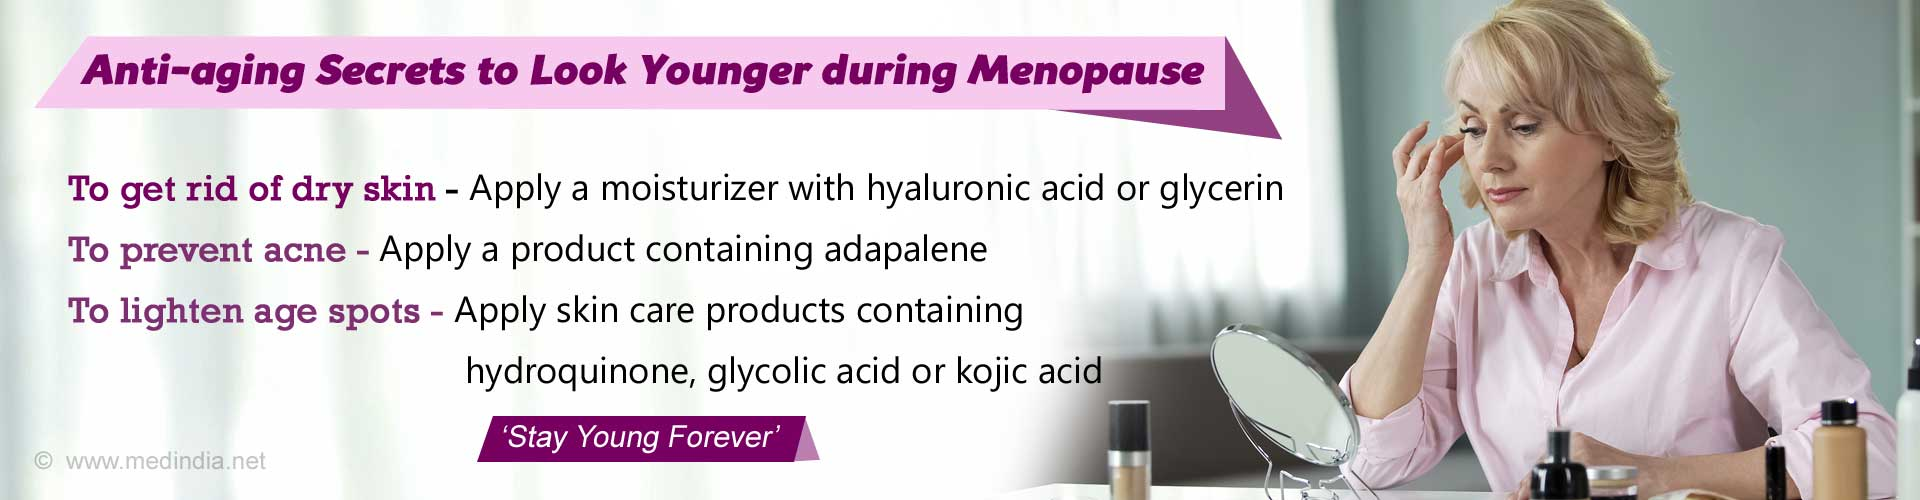 Simple Beauty Tips to Keep Your Skin Young during Menopause